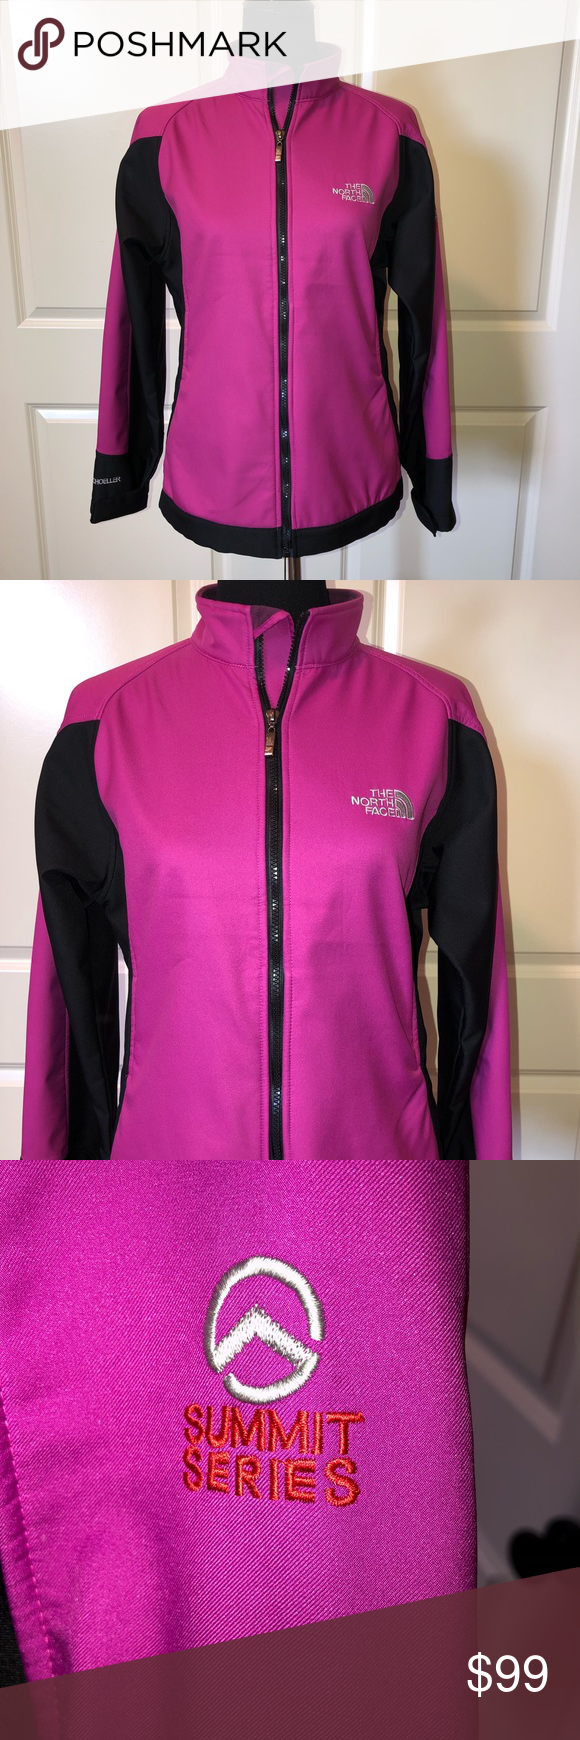 The North Face Summit Series Jacket Clothes Design Jackets The North Face [ 1740 x 580 Pixel ]